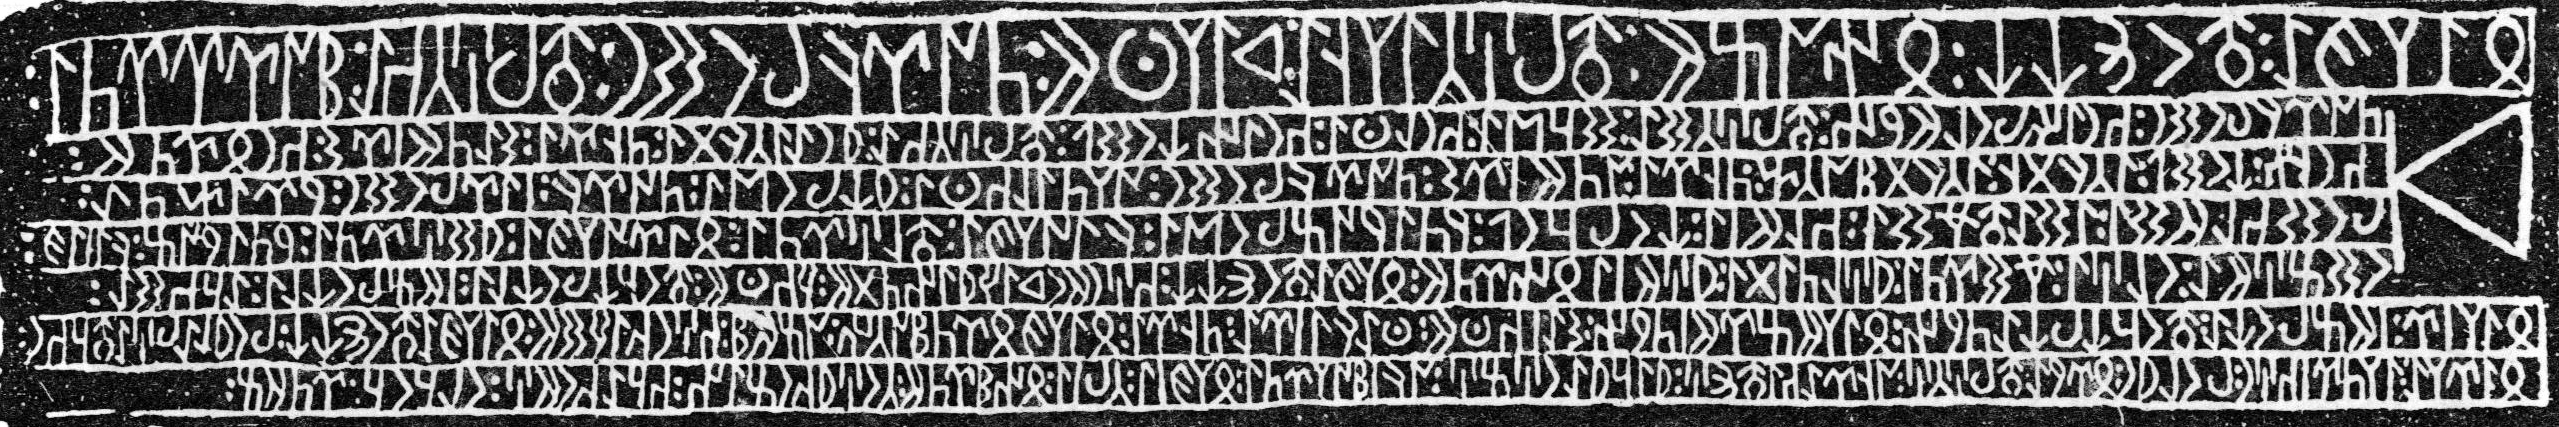 Tonyukuk_Inscription